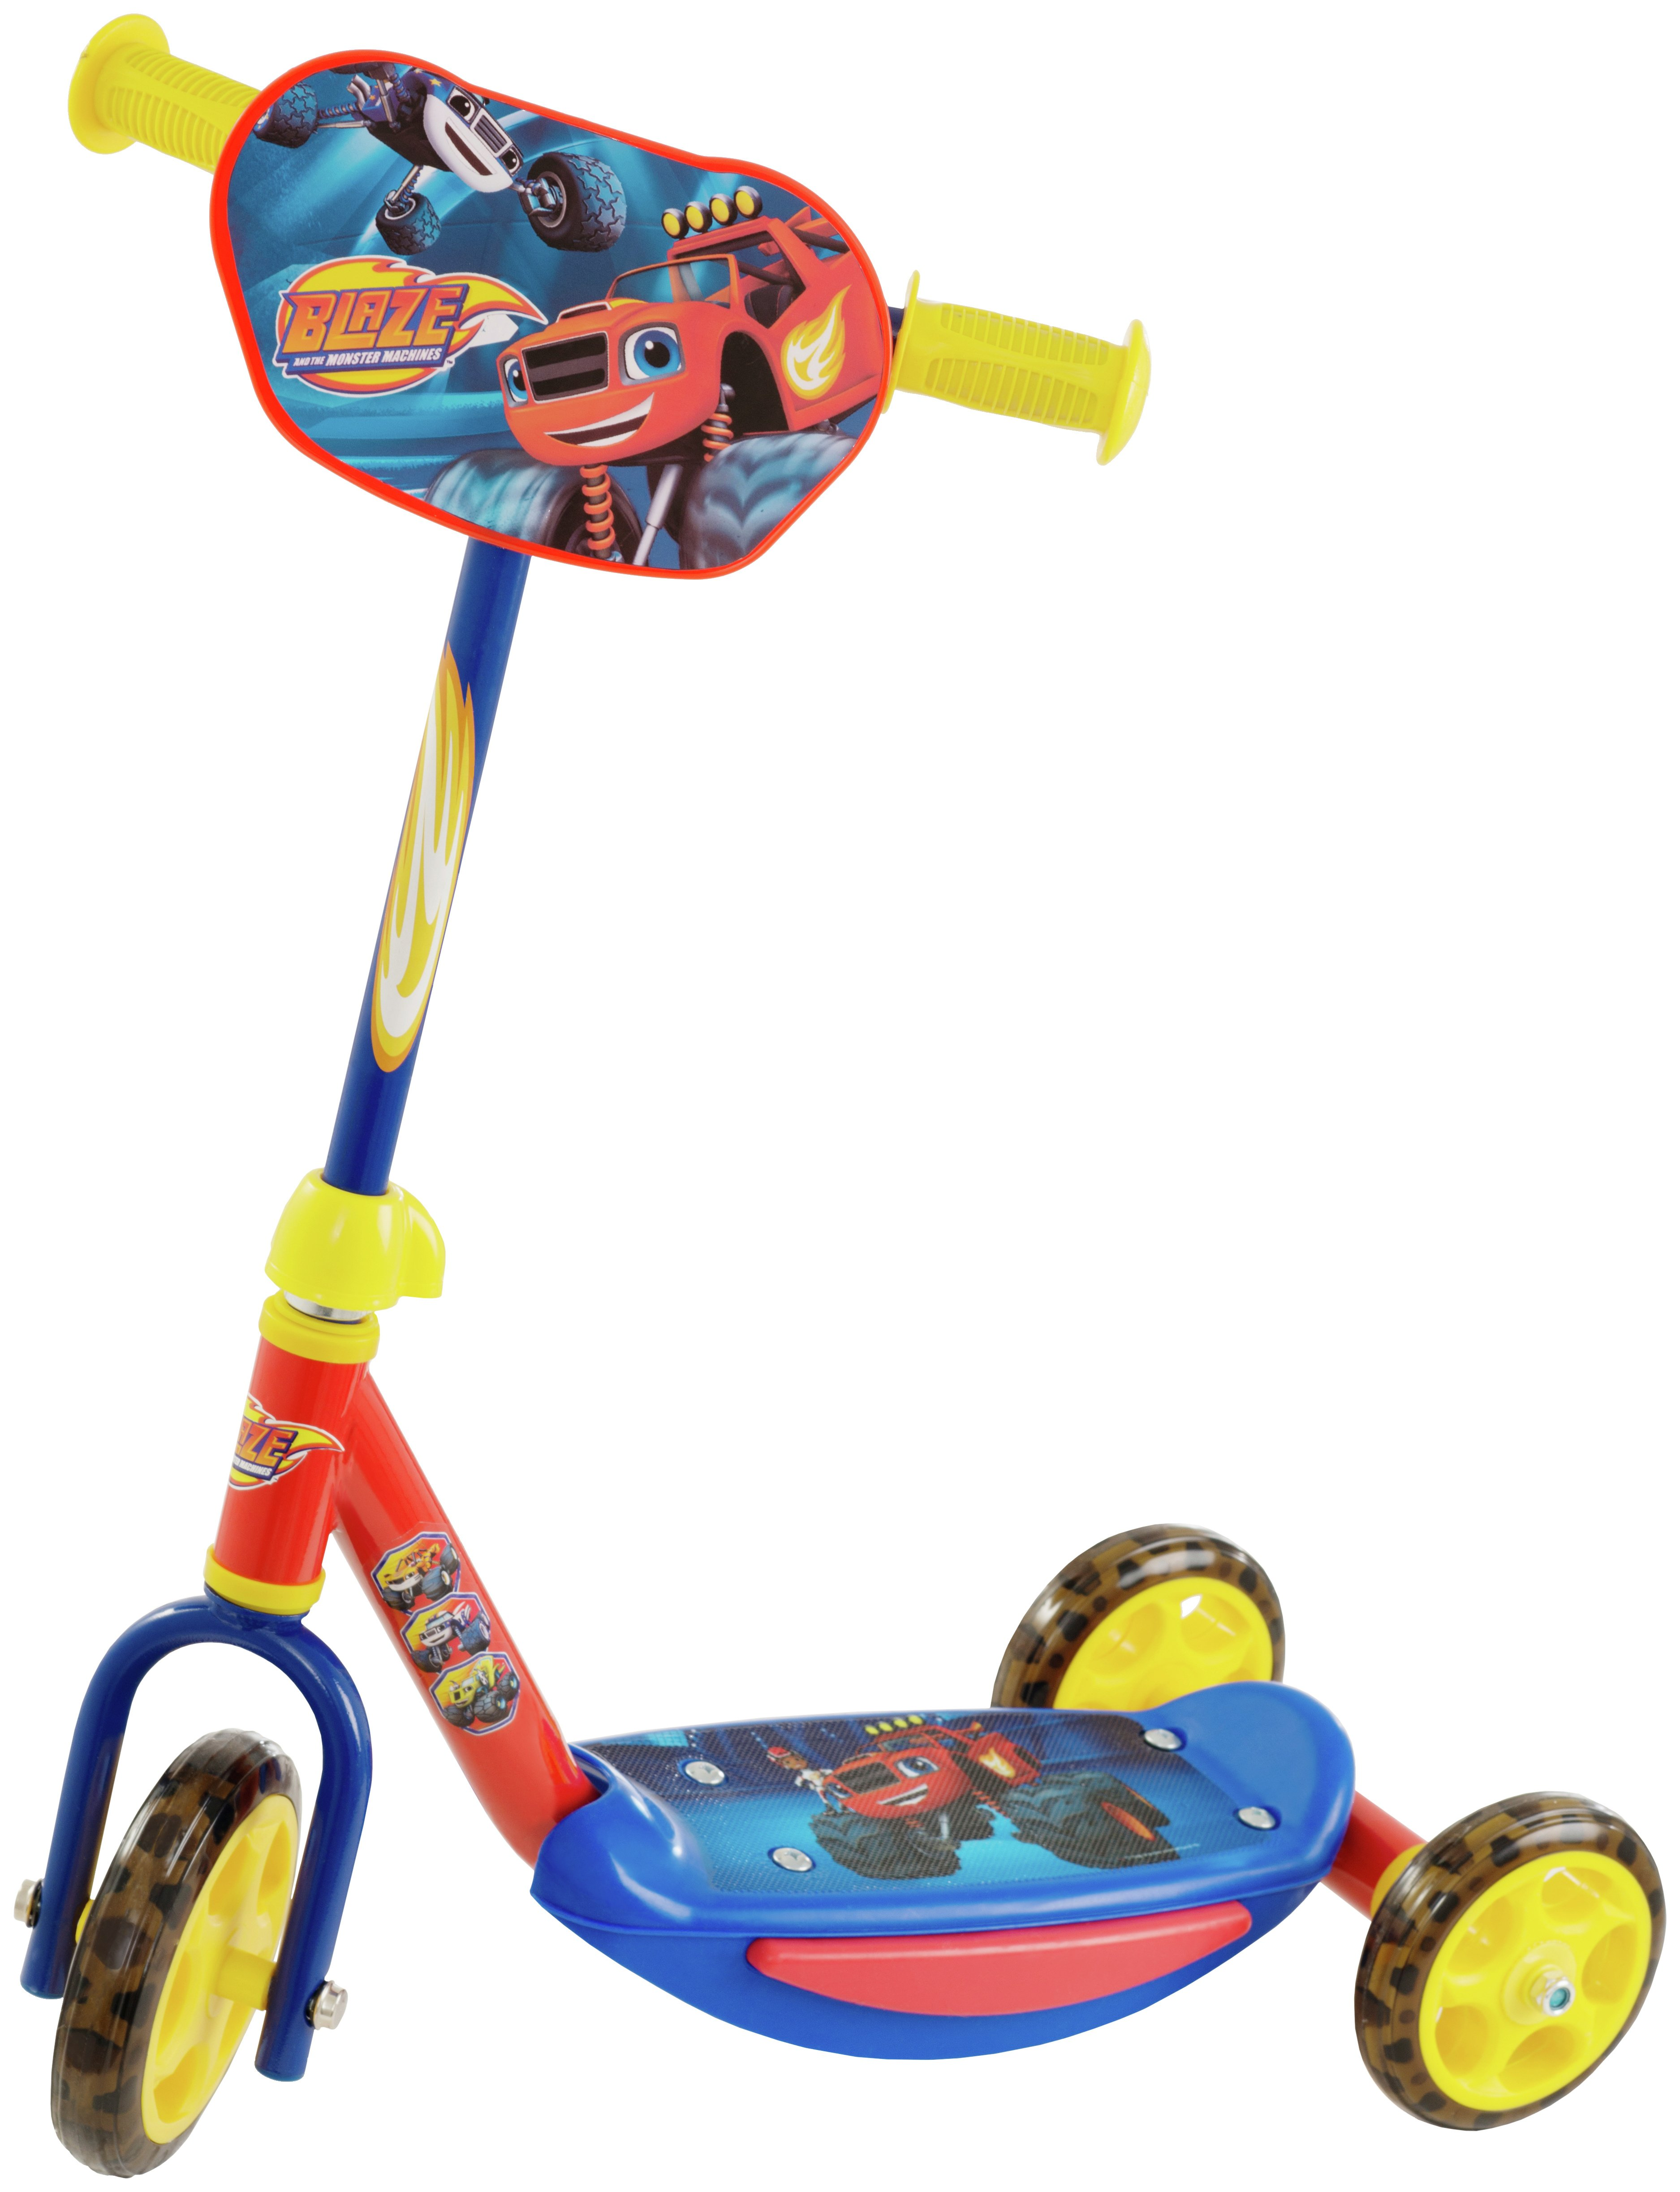 Image of Blaze and the Monster Machines Tri-Scooter